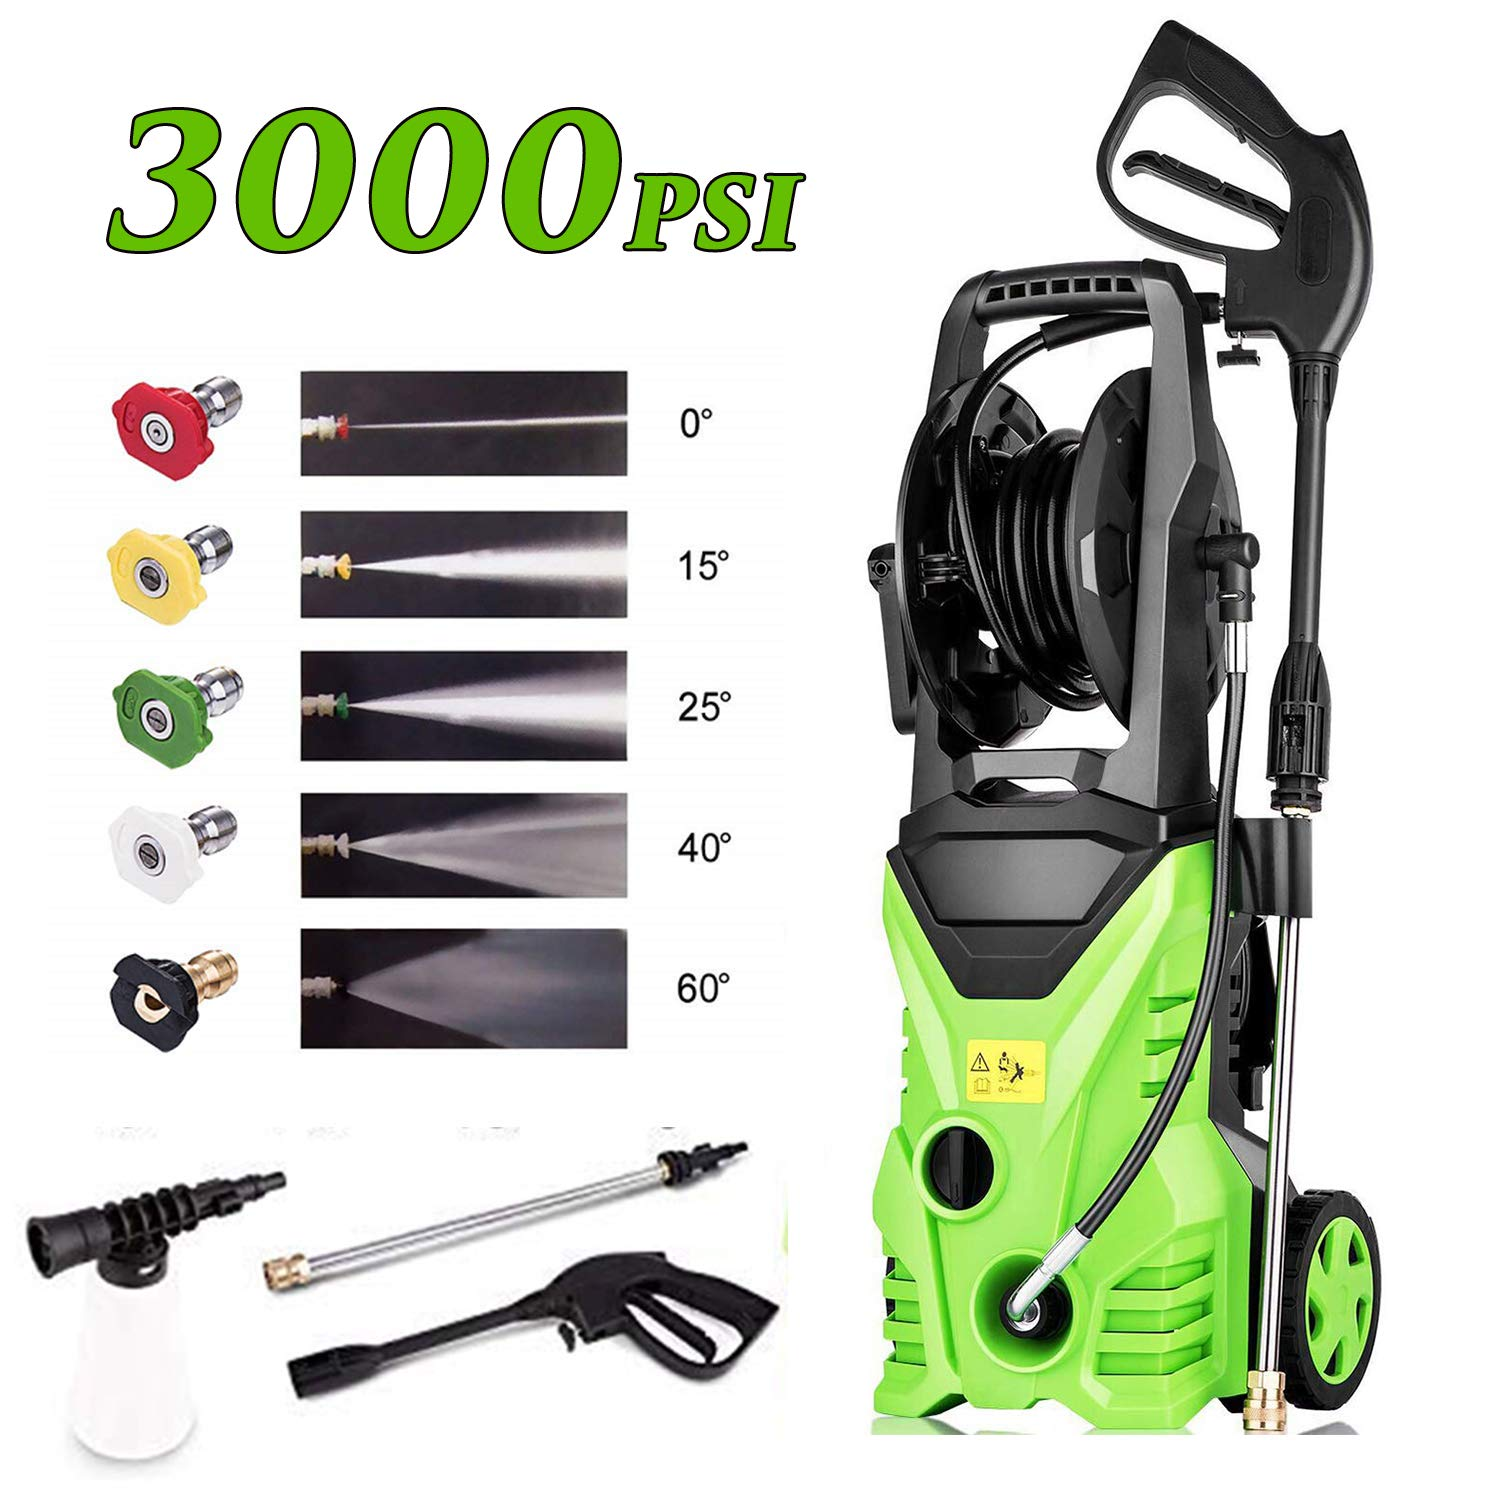 Homdox 3000 PSI 1.80 GPM Electric Pressure Washer, 1800W Electric Power Washer with Hose Reel, 5 Quick-Connect Spray Tips